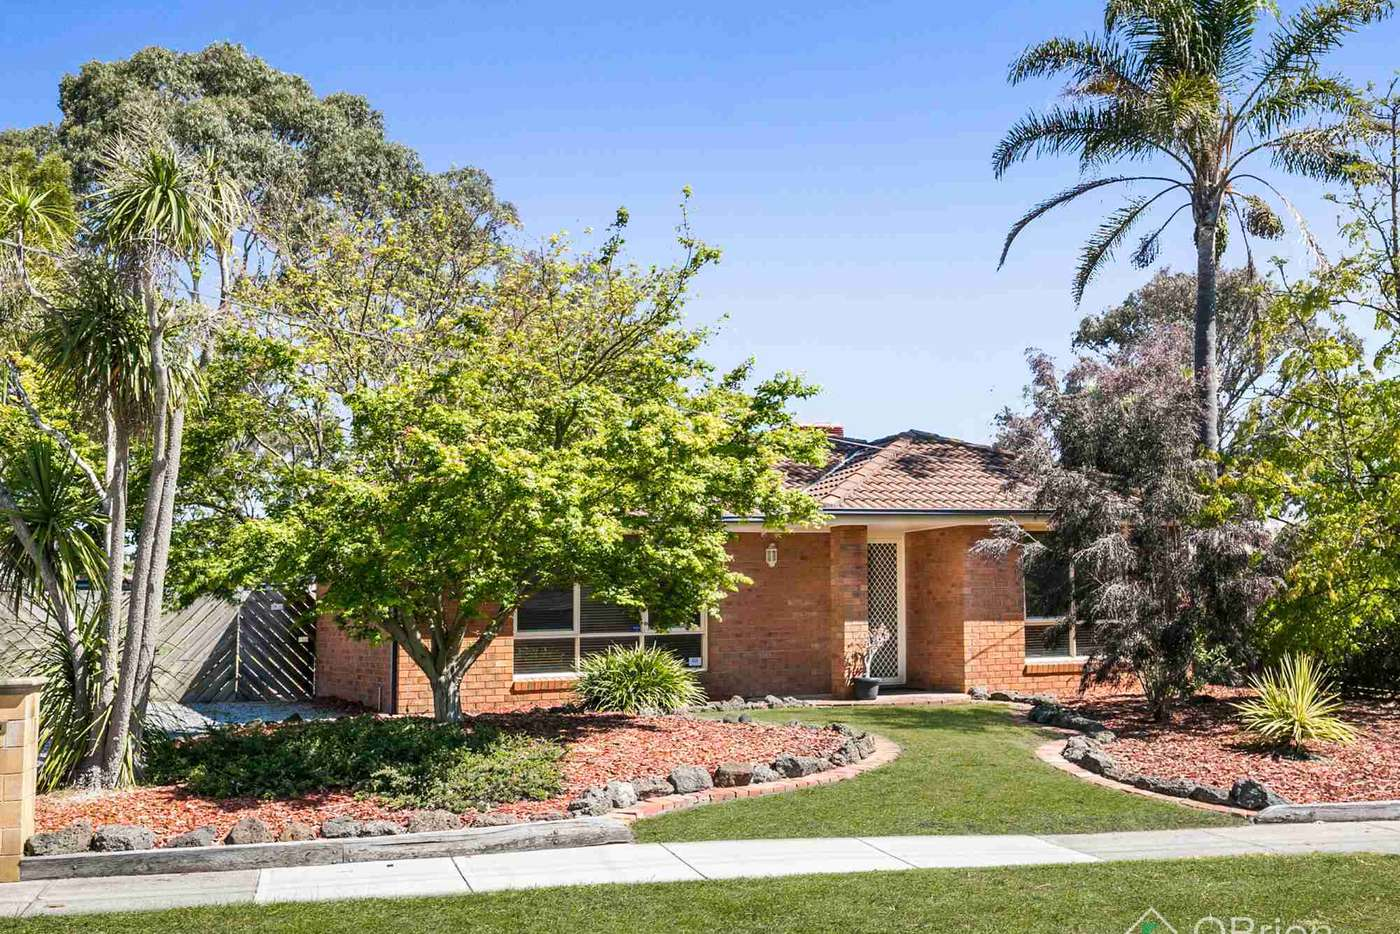 Main view of Homely house listing, 4 Juliana Drive, Carrum Downs VIC 3201